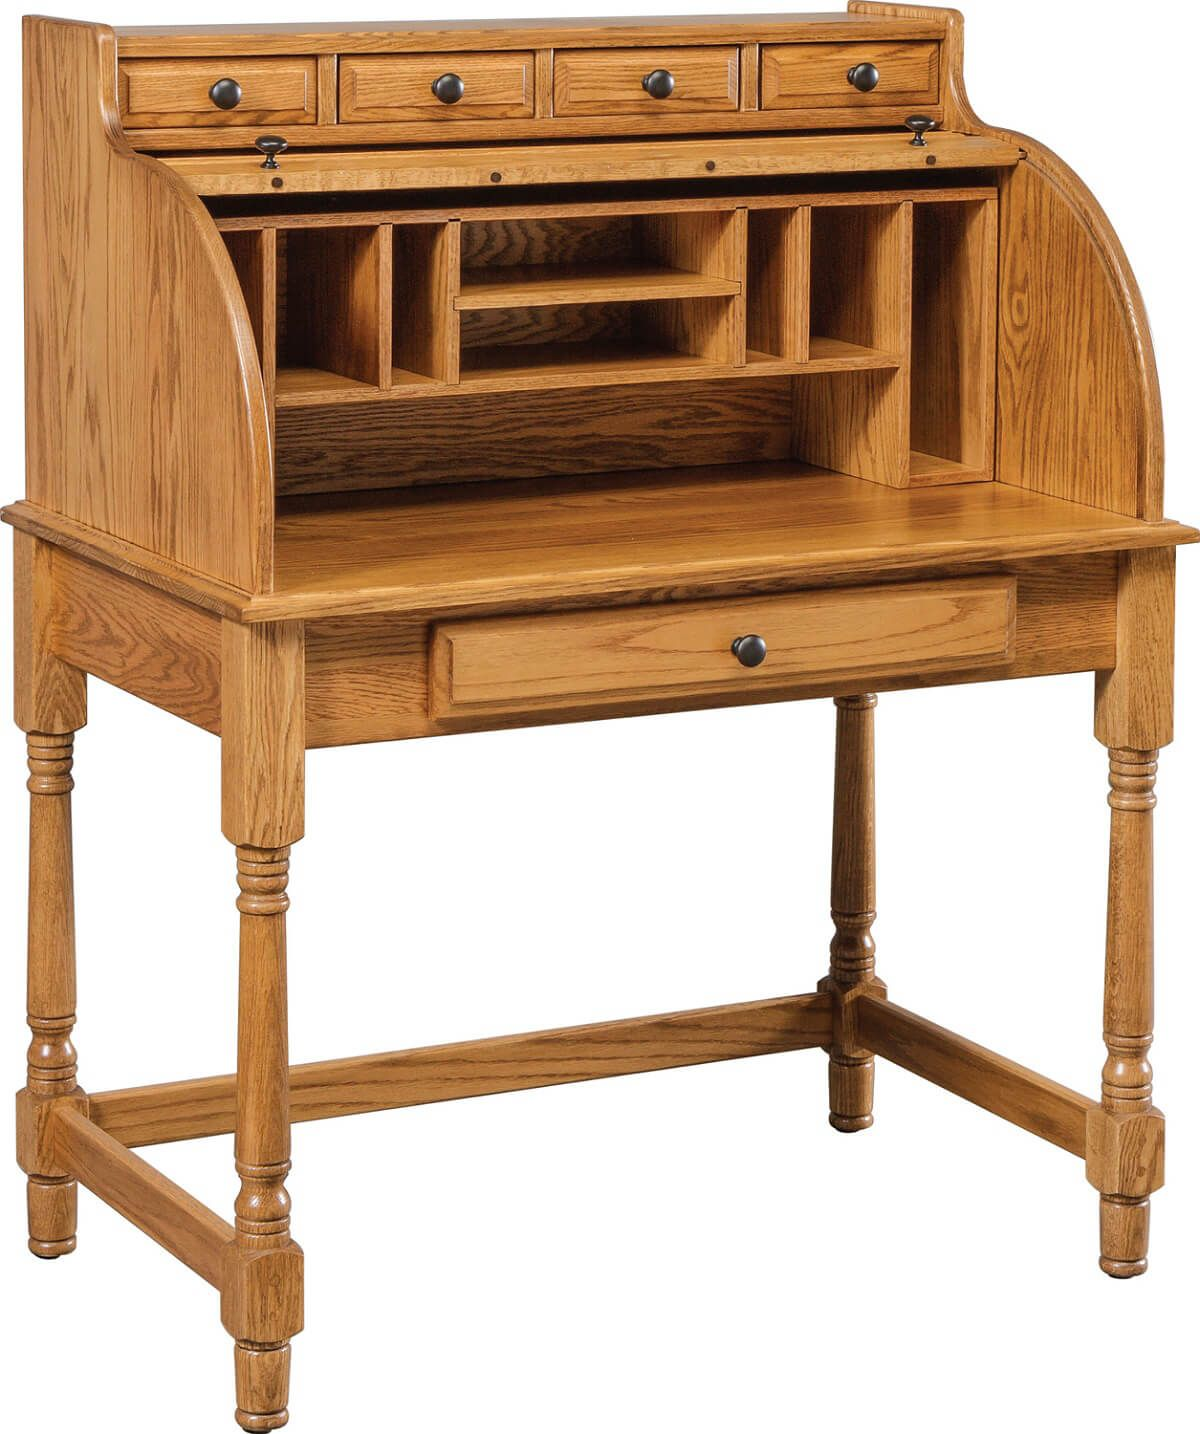 Playwright's Roll Top Desk